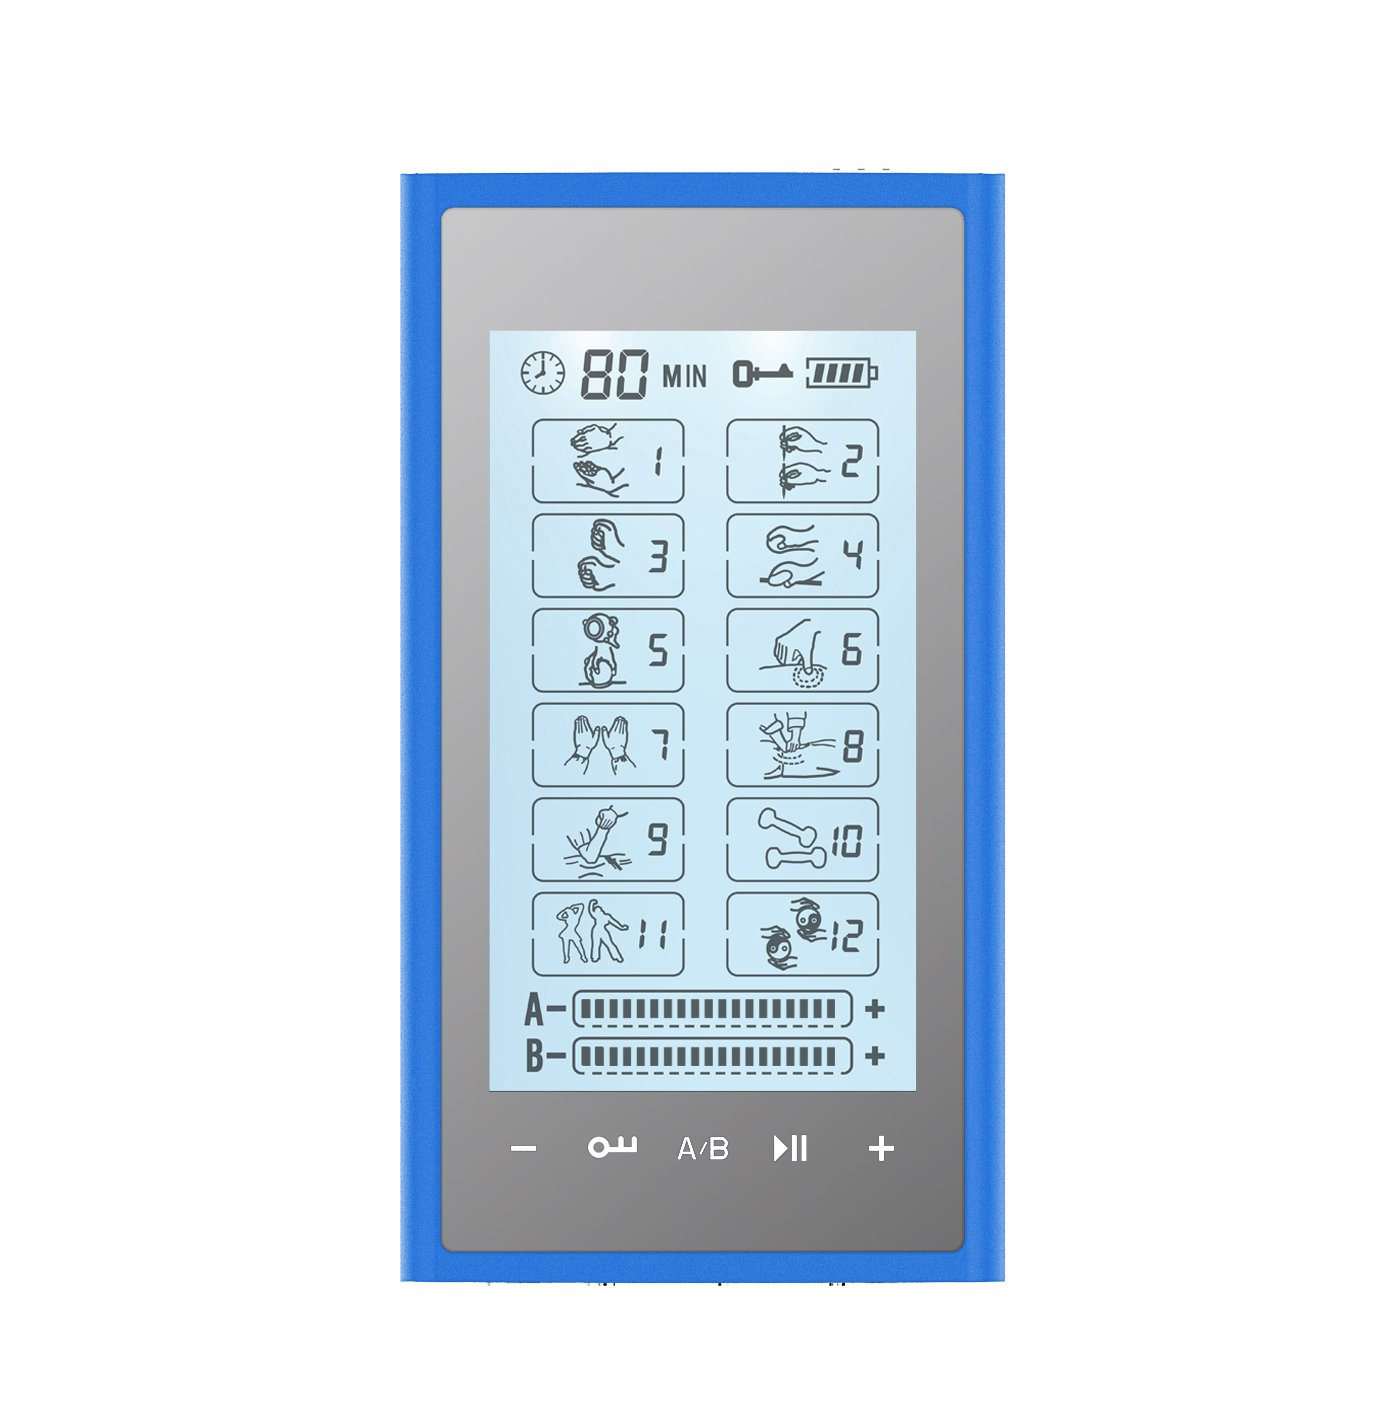 T12AB2 HealthmateForever TENS Unit Electrical Muscle Stimulator Blue in Silver + 5 Pairs of Pads